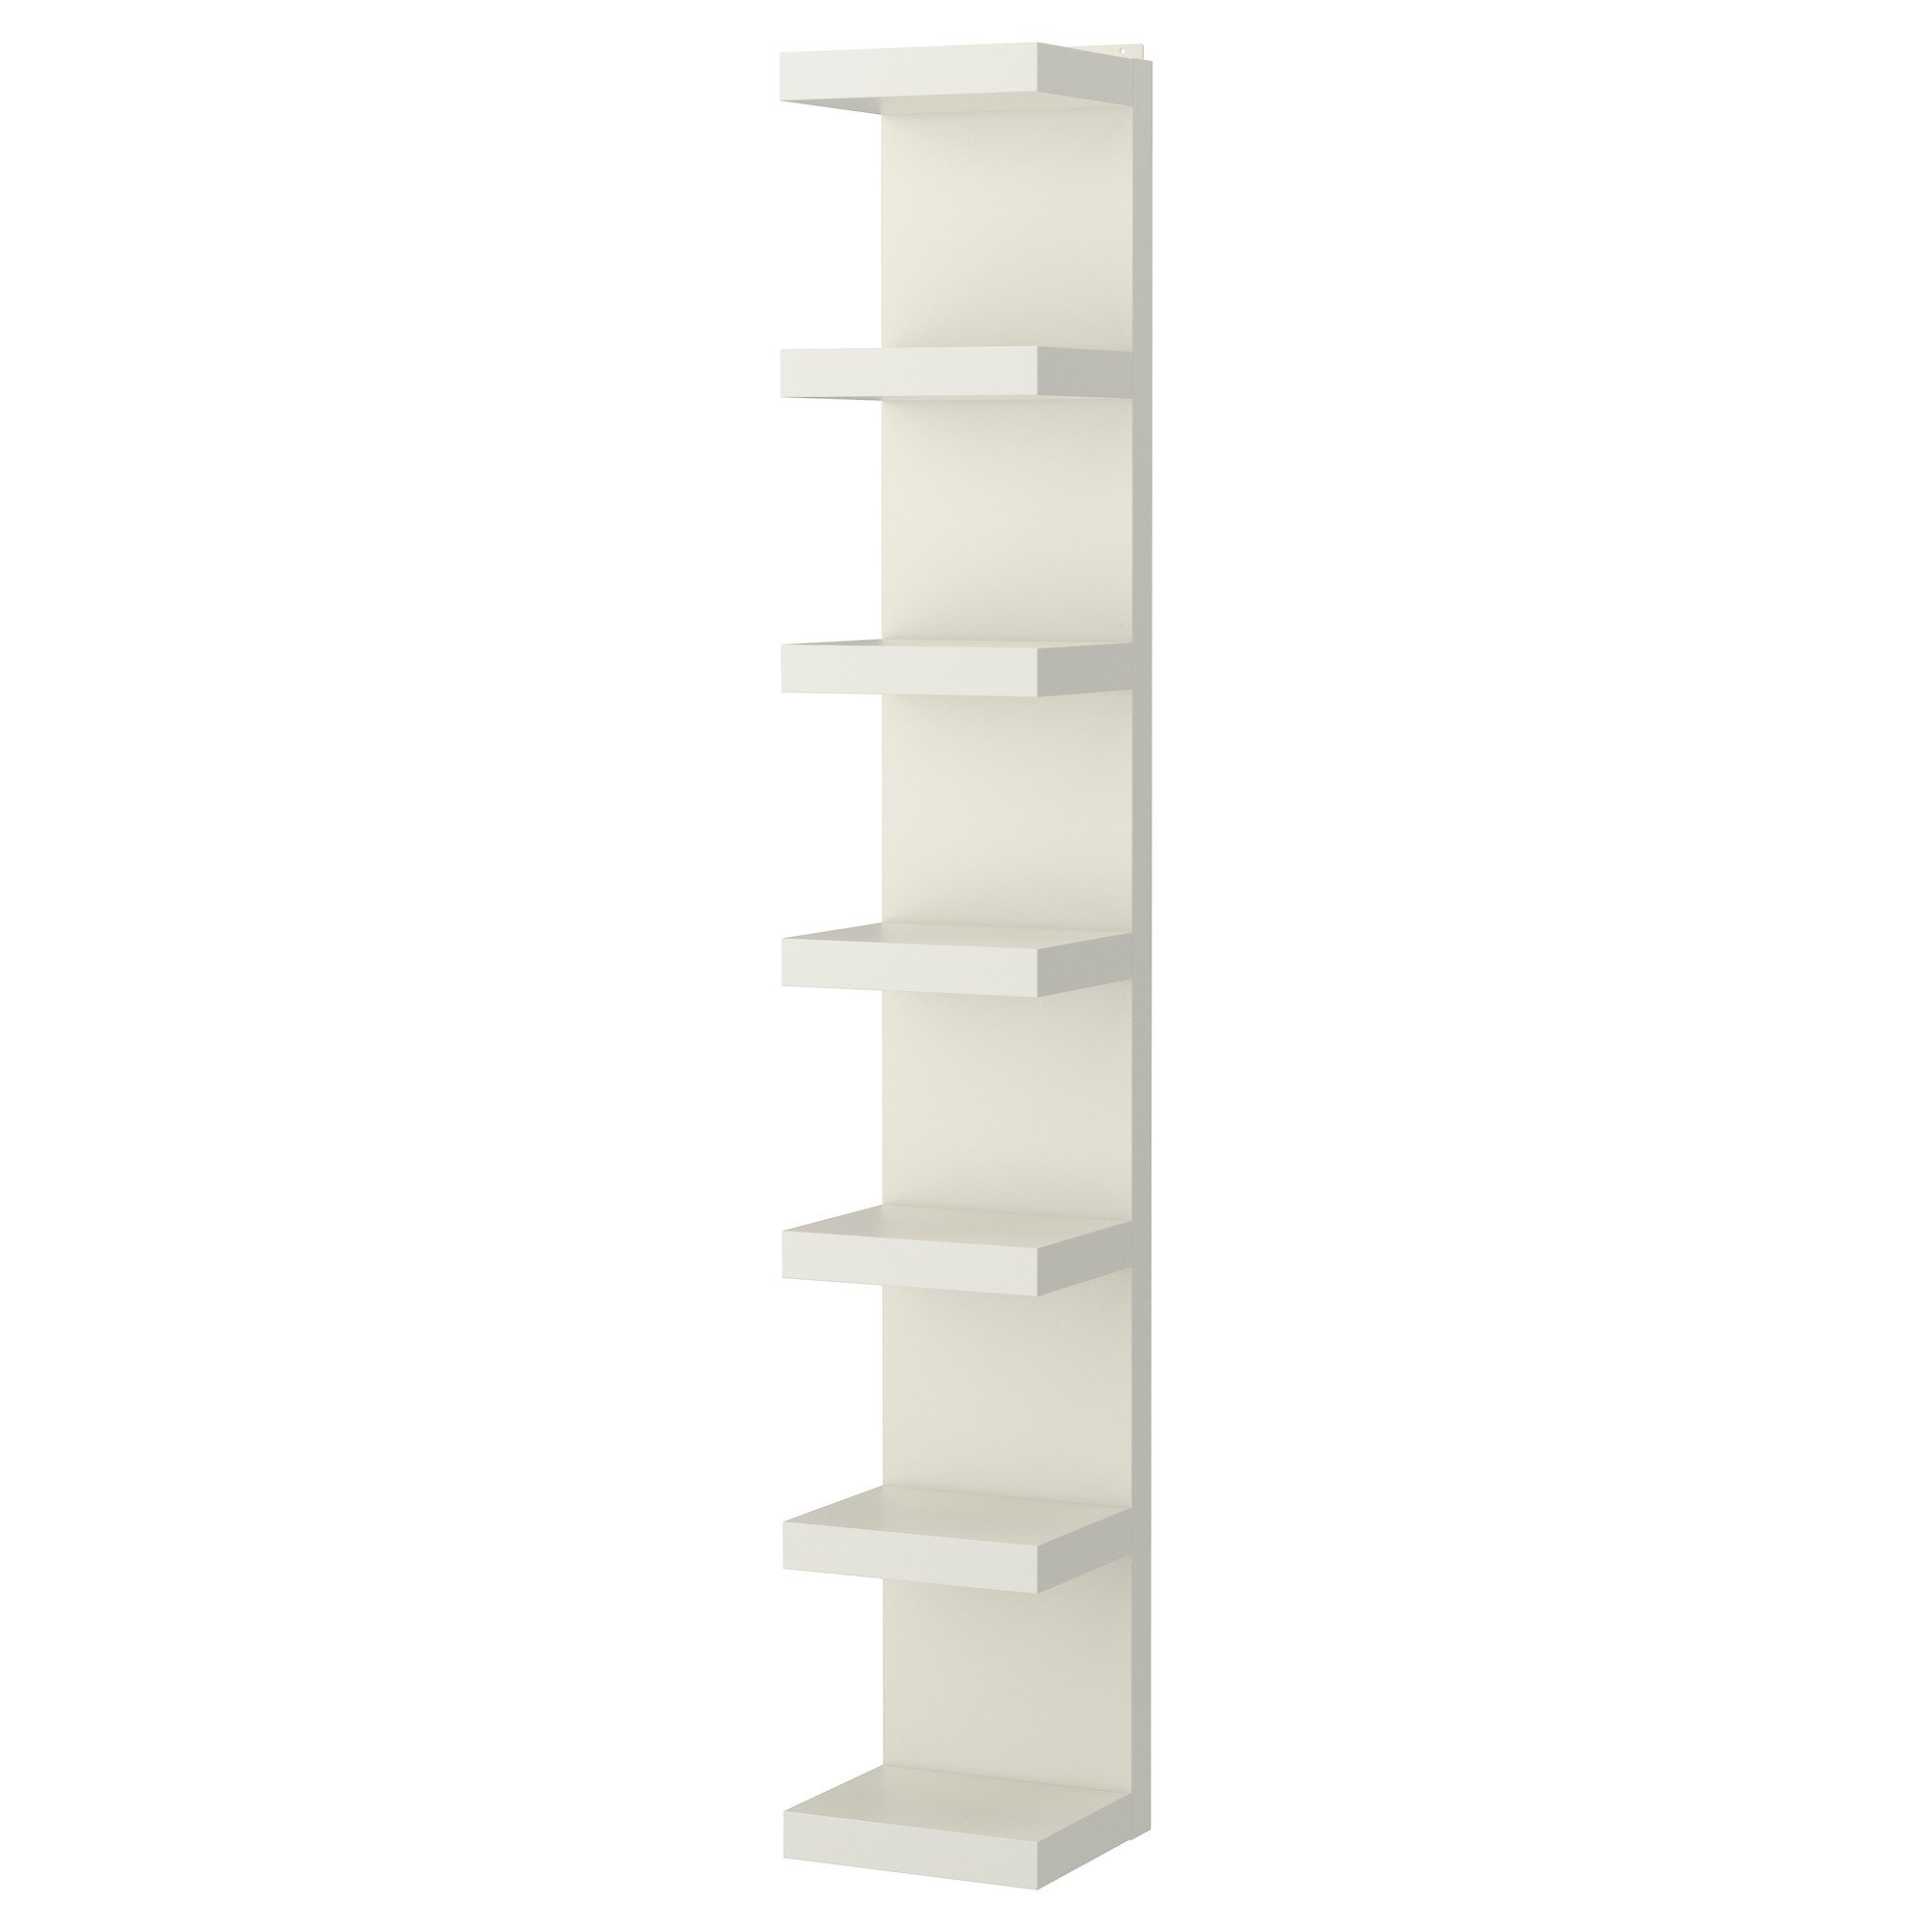 _IKEA Wall Shelf Organizer Unit Modern design that can be used Vertically or Horizontally. Perfect for your Living Room, Kids Room, Family Room